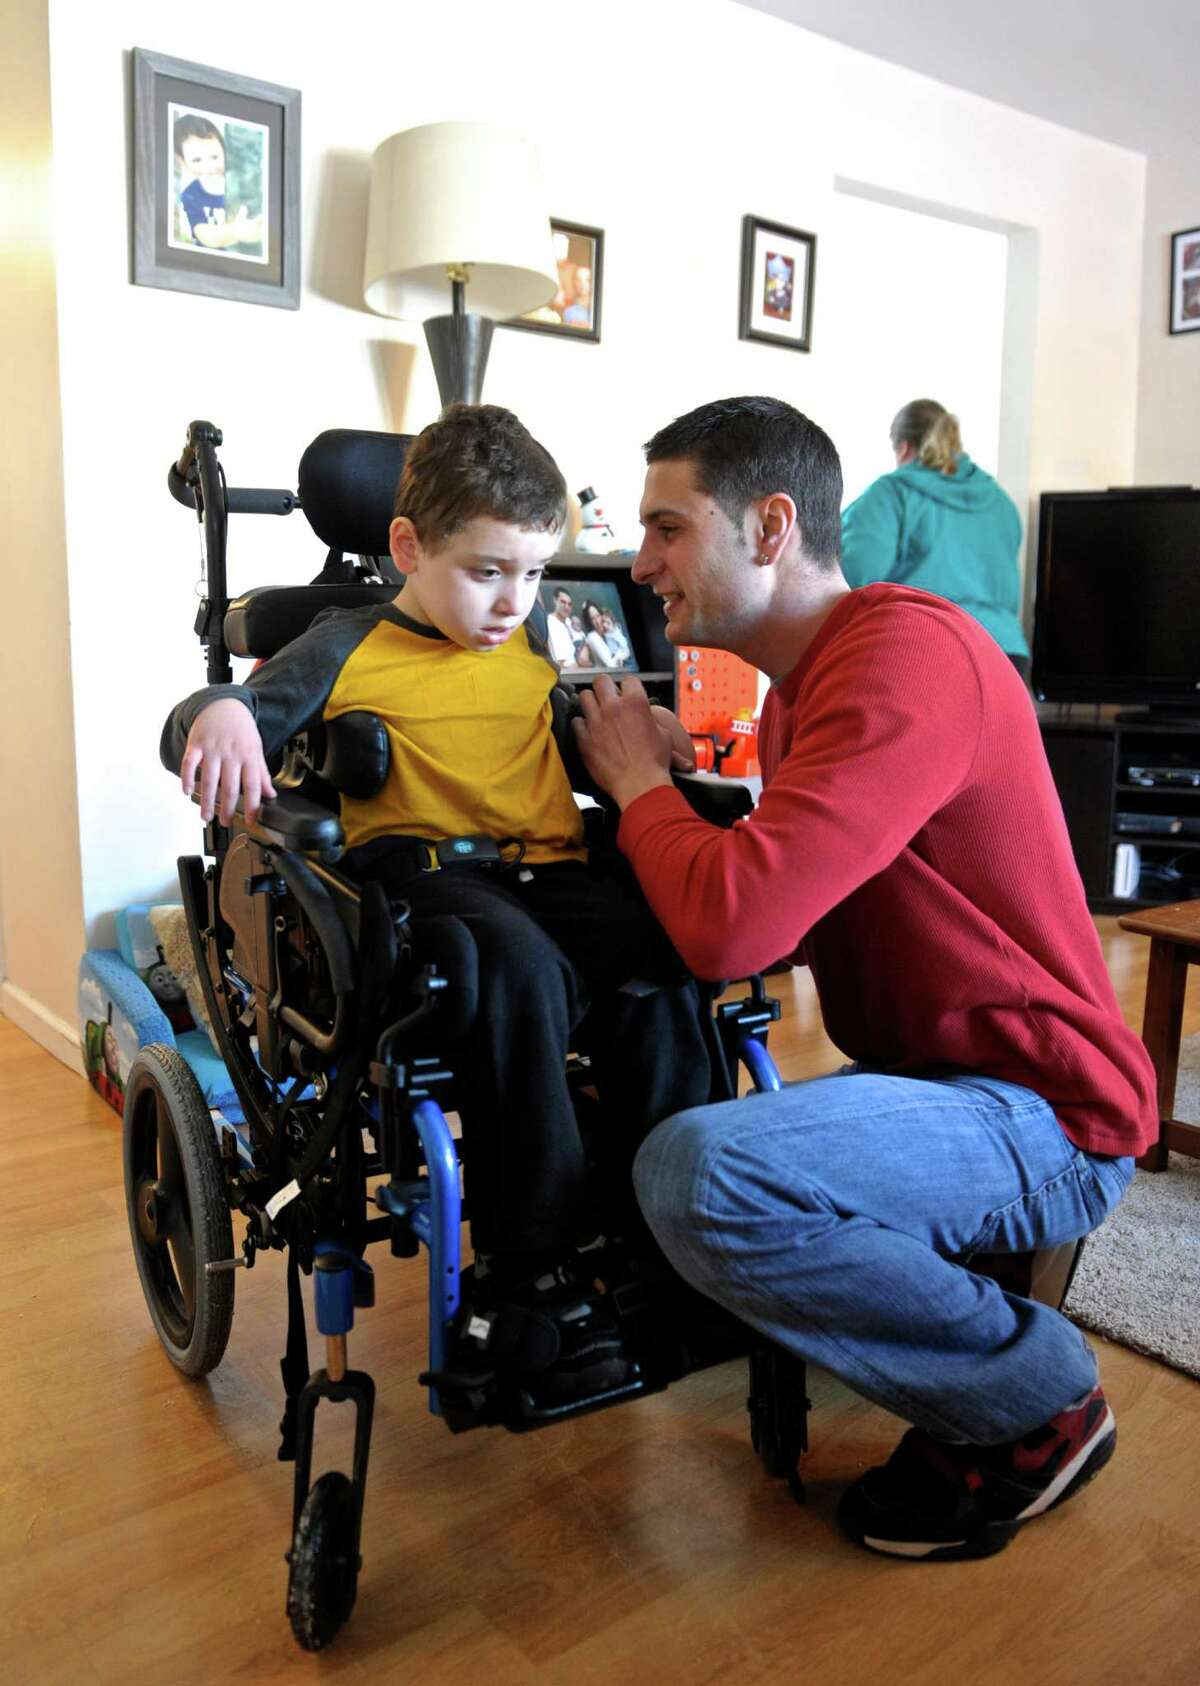 Jayce Correia brings his son Jared Carreras, 8, in from his ride home from school on Tuesday, February 3, 2015, in Brookfield, Conn. Correia made a video, of a rap song he composed, with Jared and uploaded it to YouTube. Jared was born with cerebral palsy, hydrocephalus, epilepsy, and several other debilitating medical conditions as a result of a stroke he suffered in utero. His parents feel that although Jared can't stand, walk, talk or see, he is a